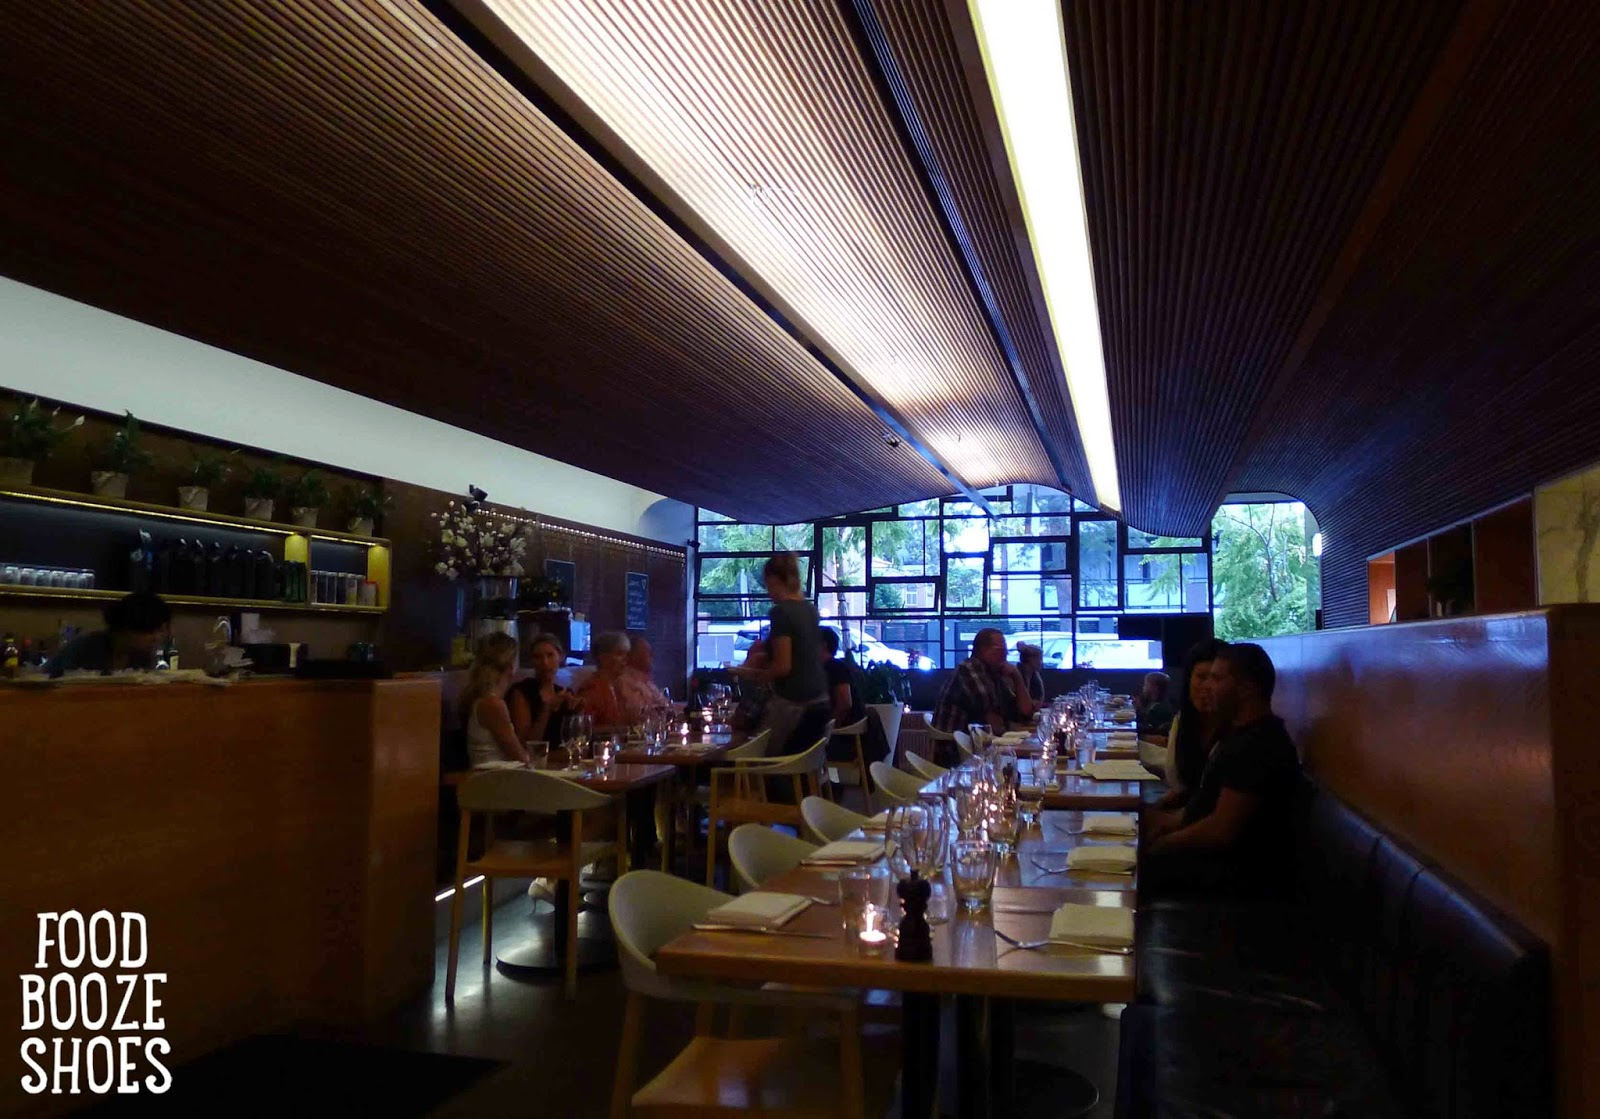 Food, booze and shoes: The locals\' Woodland Kitchen & Bar